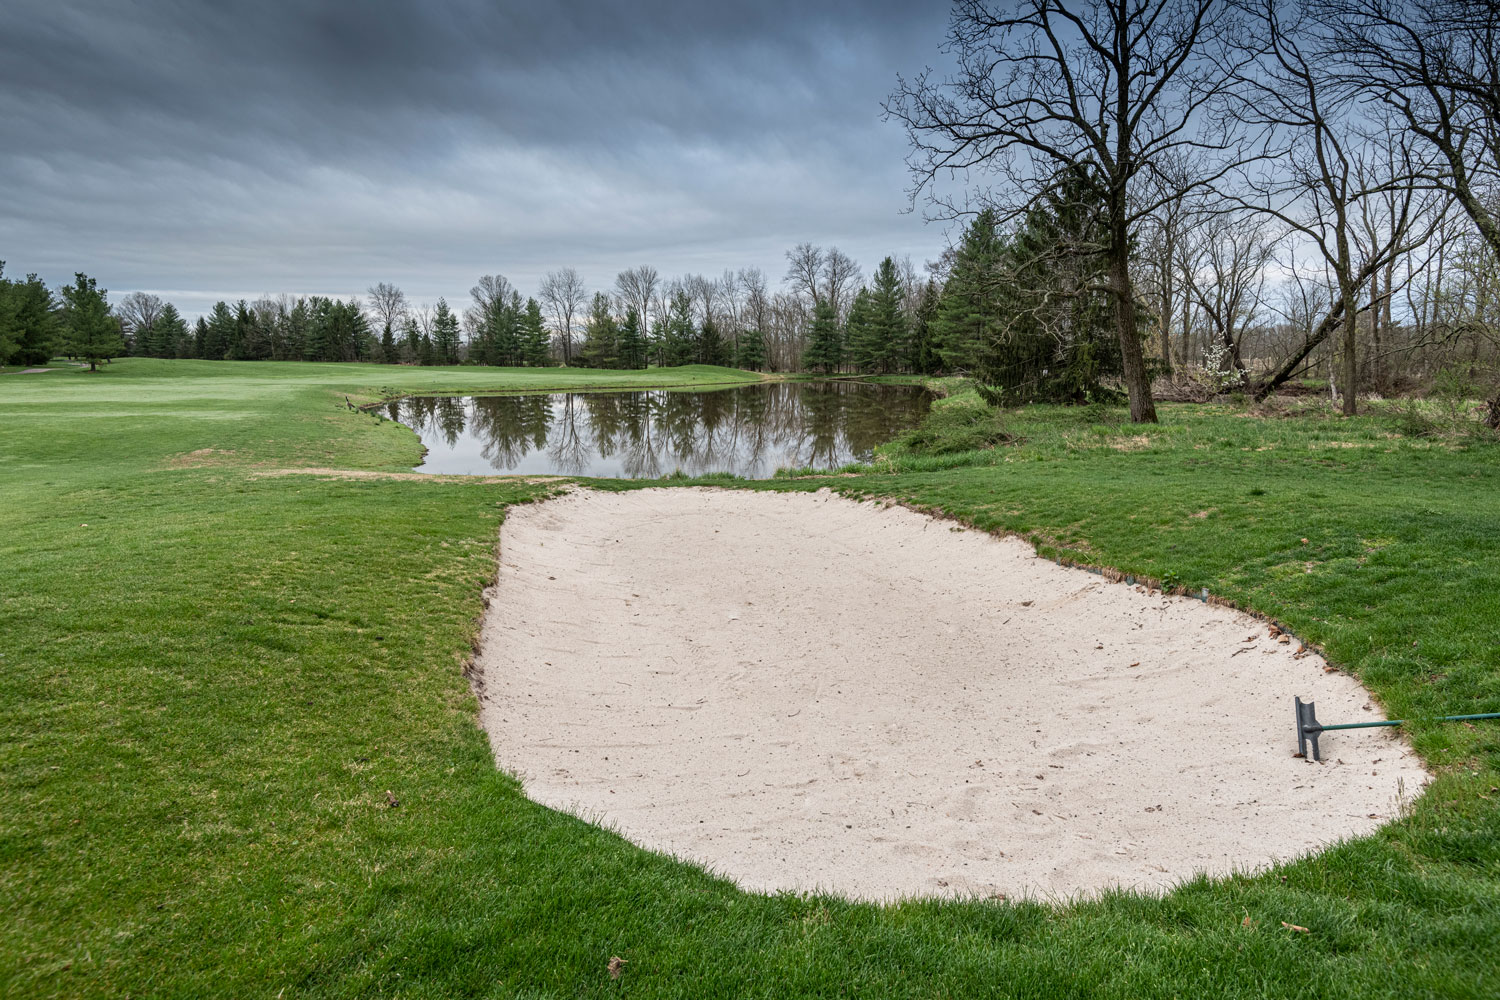 The sand trap on the course